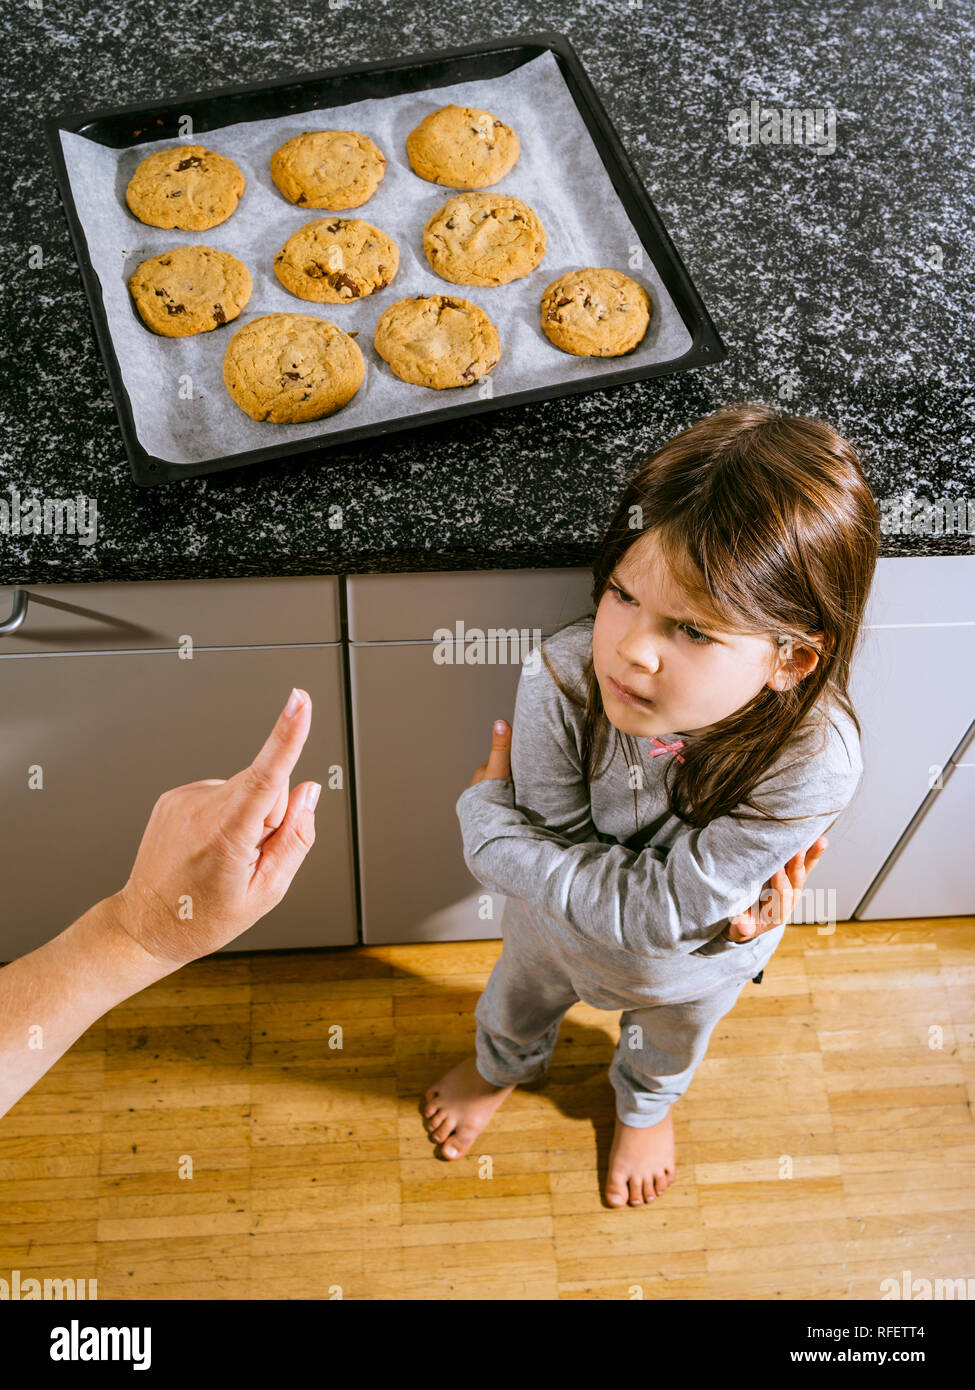 Photo of a young girl angry because her mother is telling her she cannot have any chocolate chip cookies from the baking tray. - Stock Image